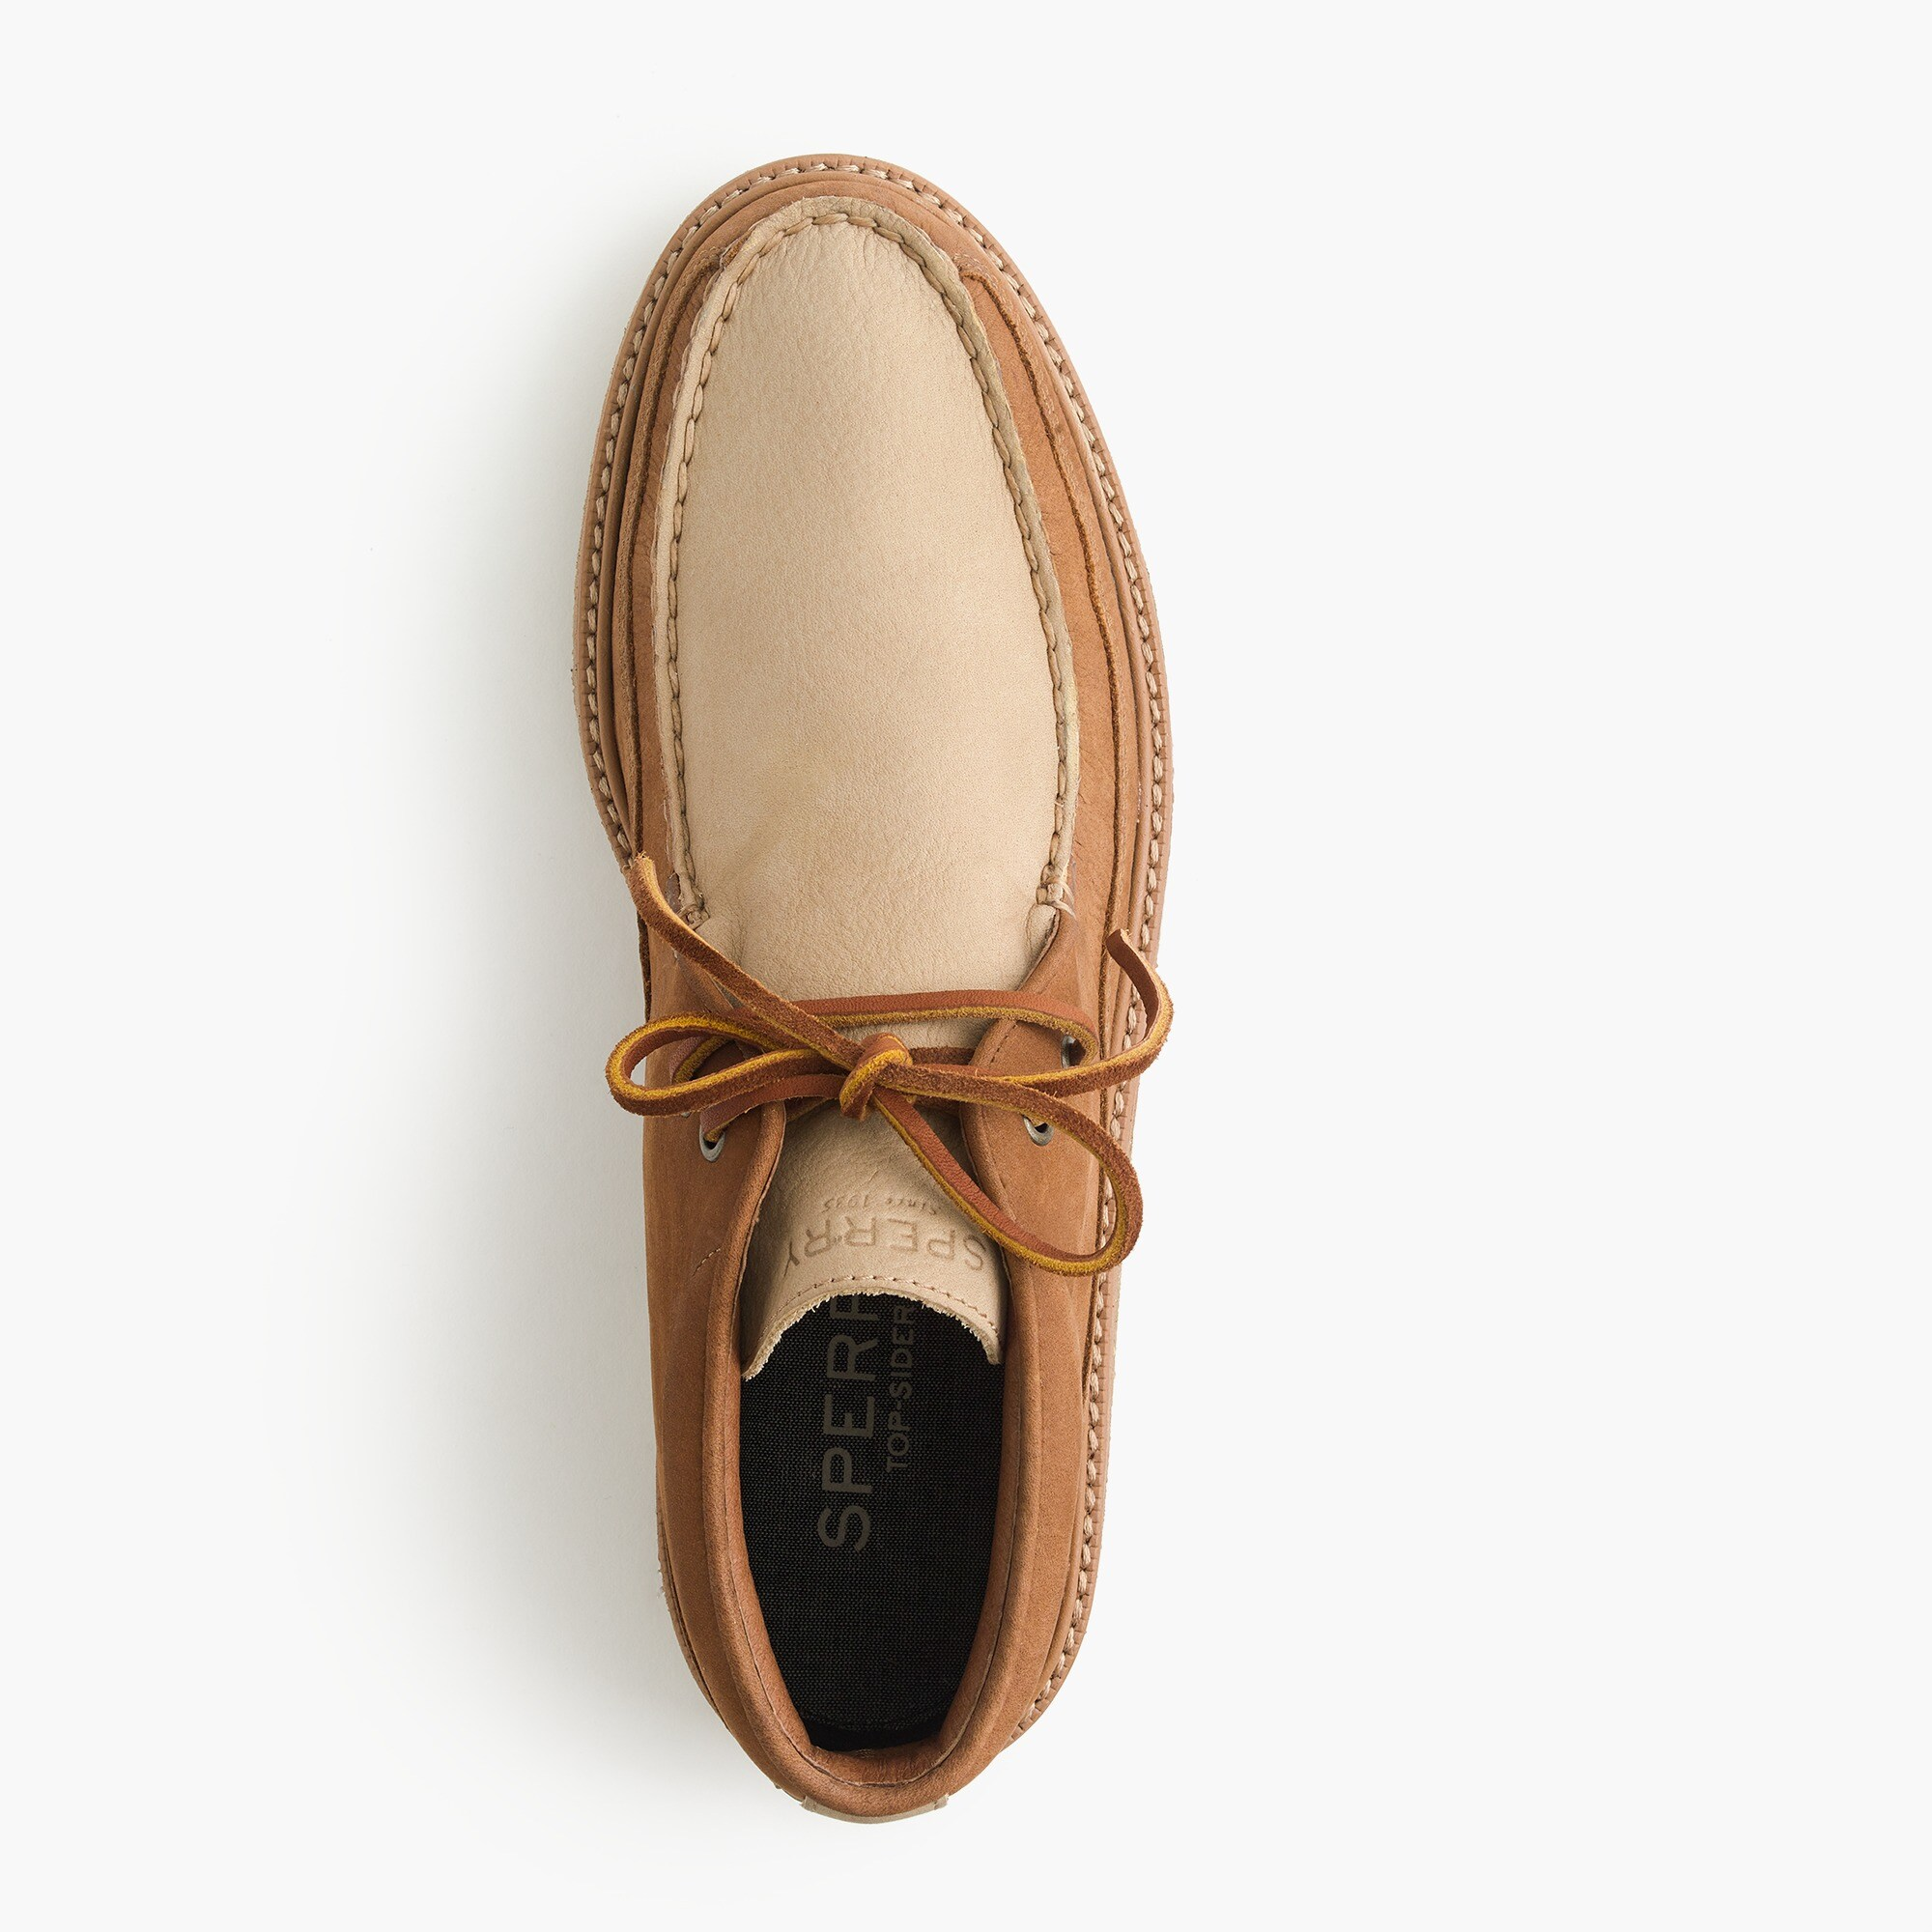 Image 2 for Sperry® for J.Crew crepe soled leather chukka boots